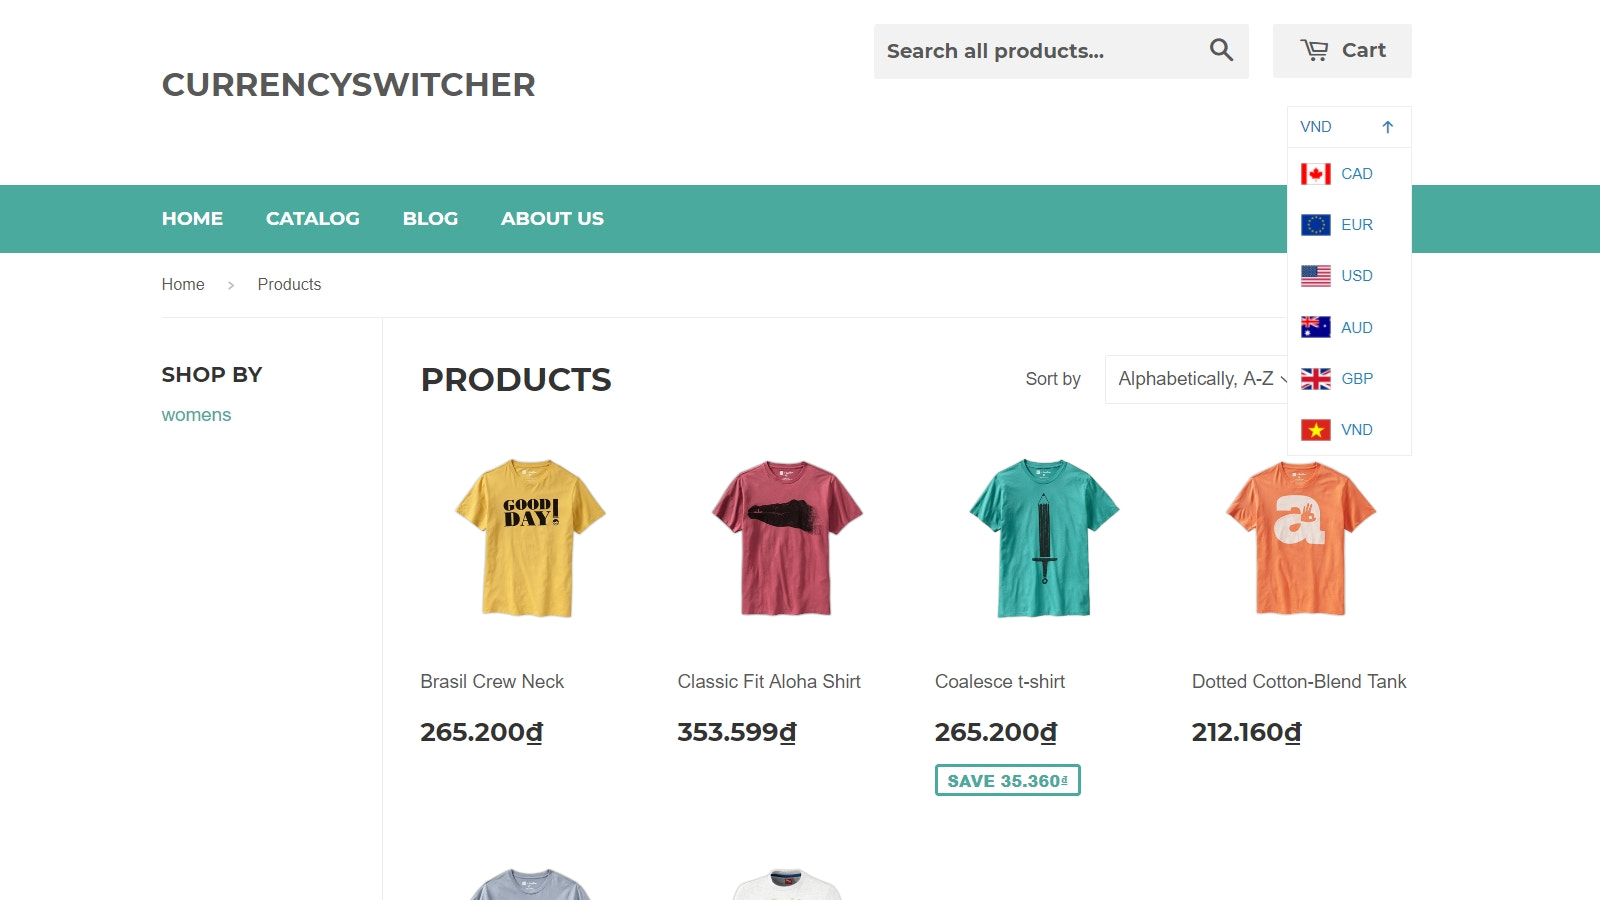 Currency switcher on the frontend